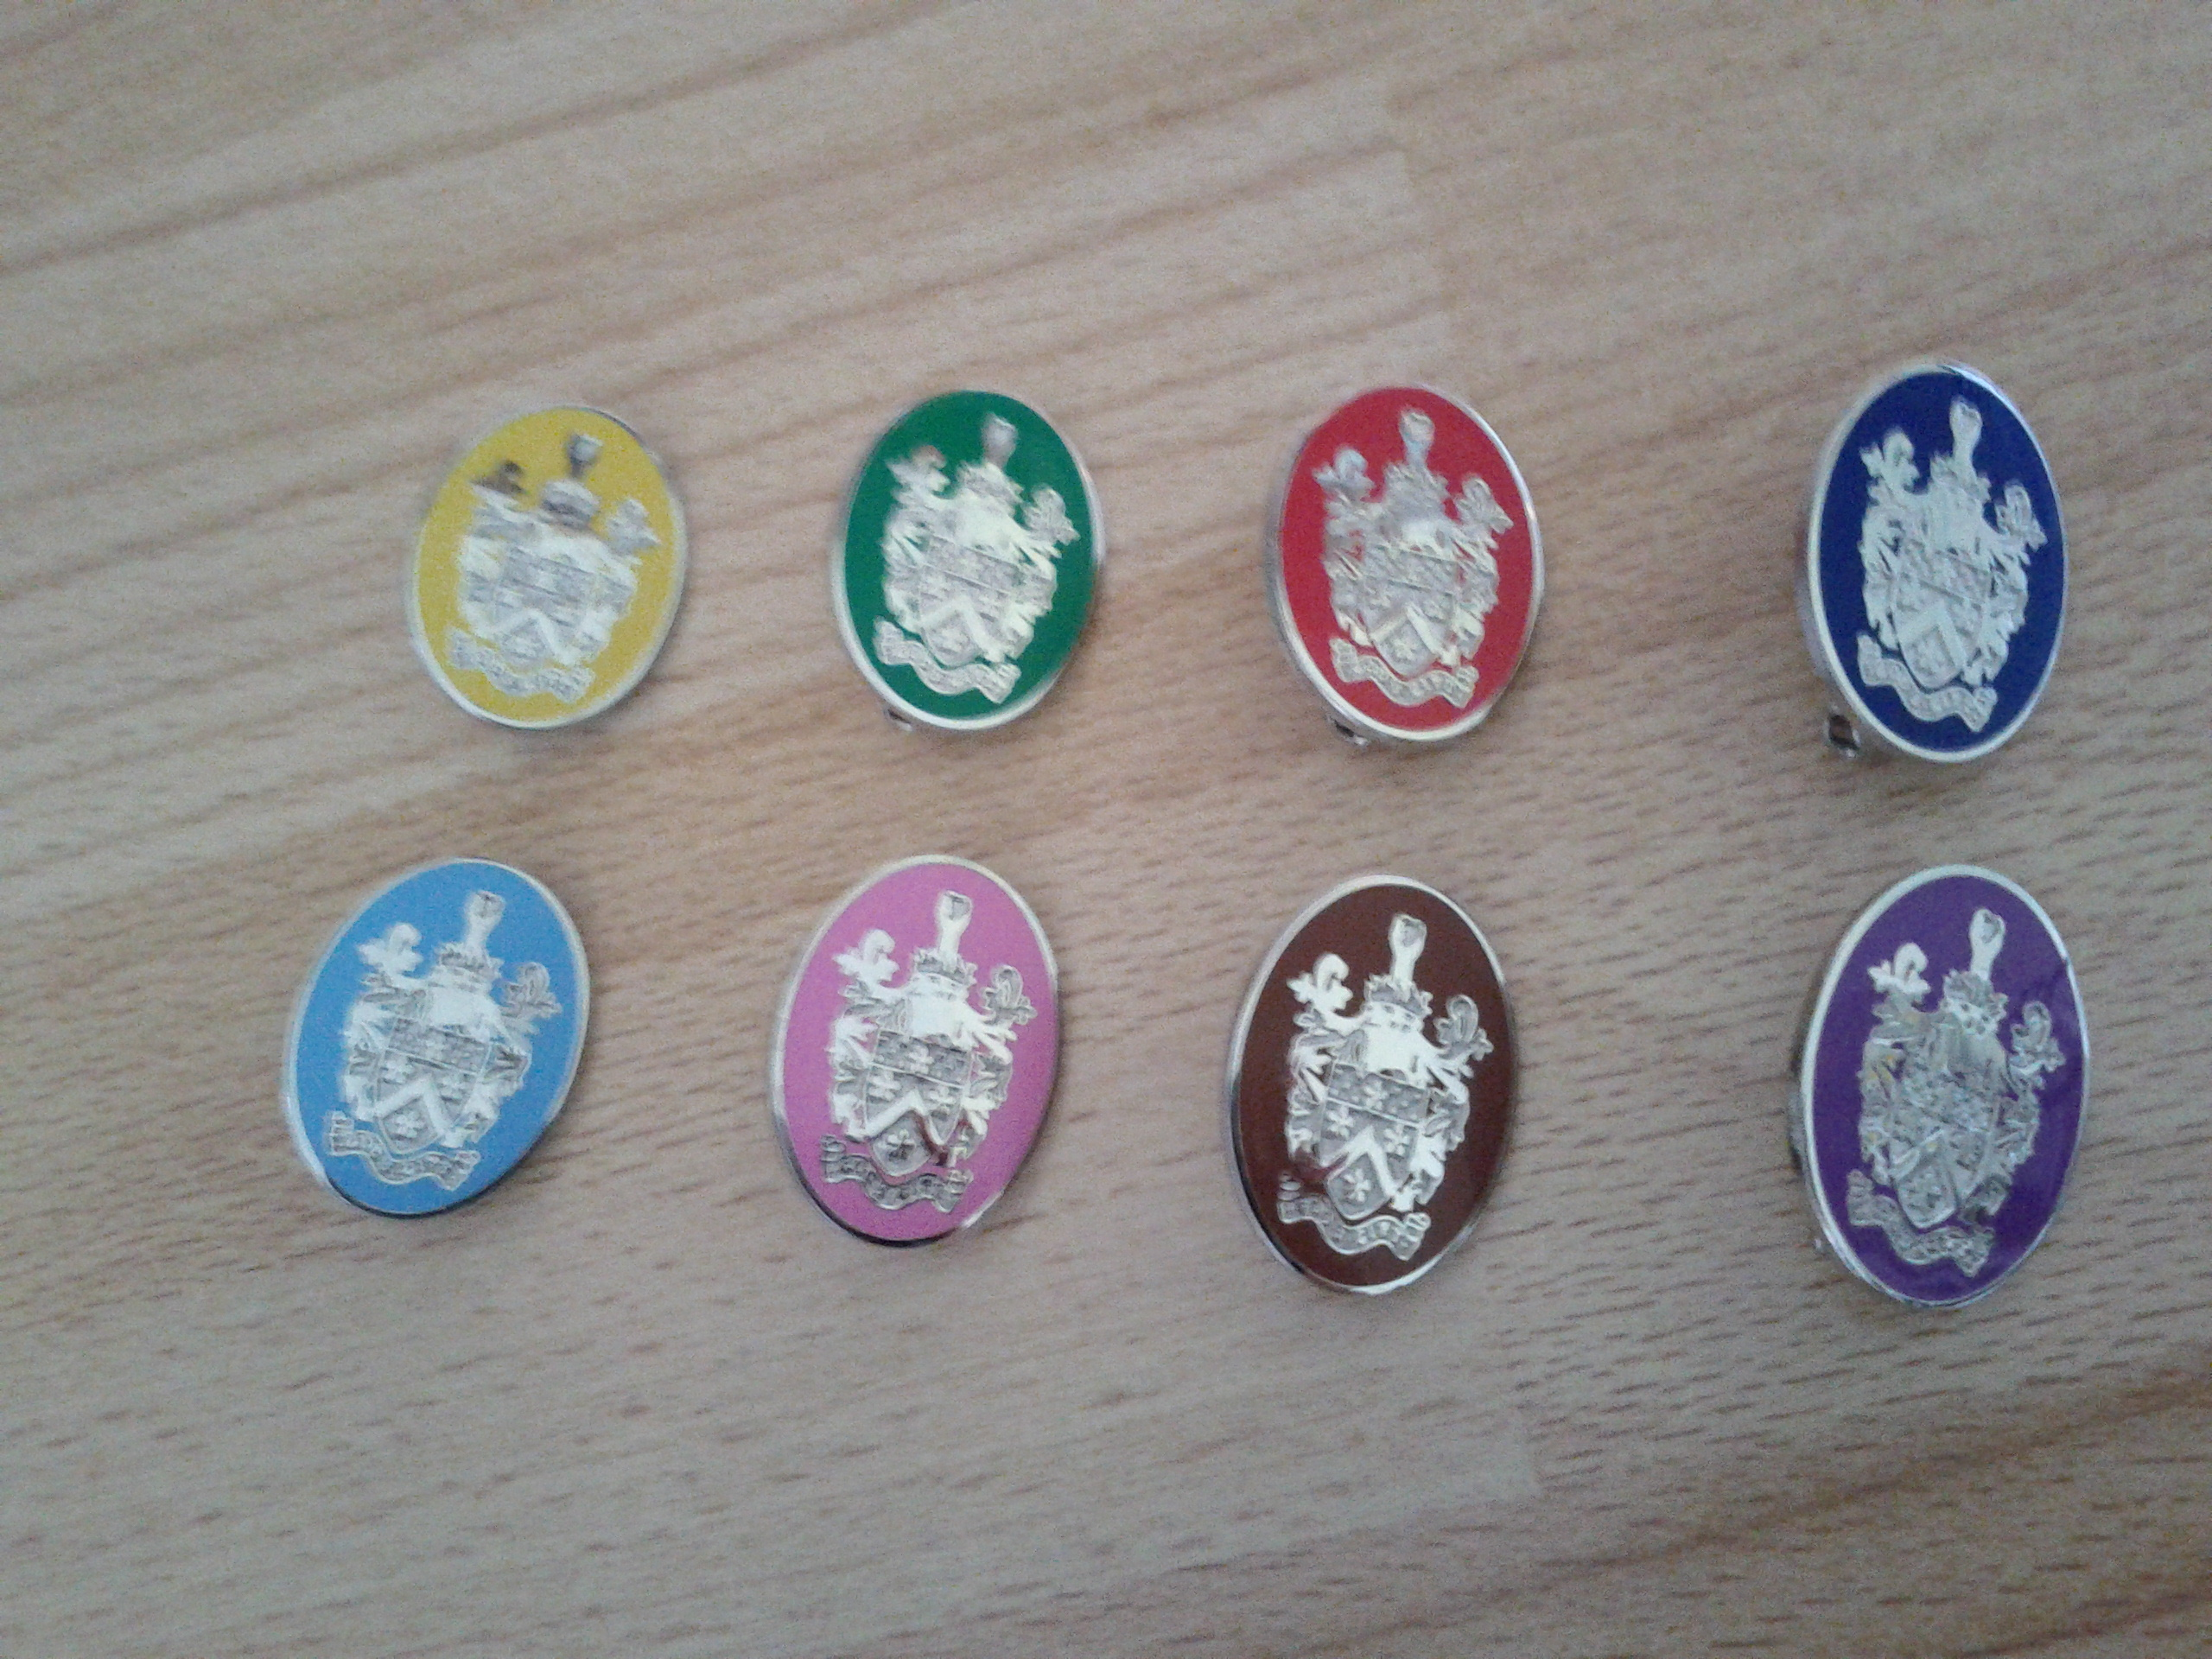 House badges